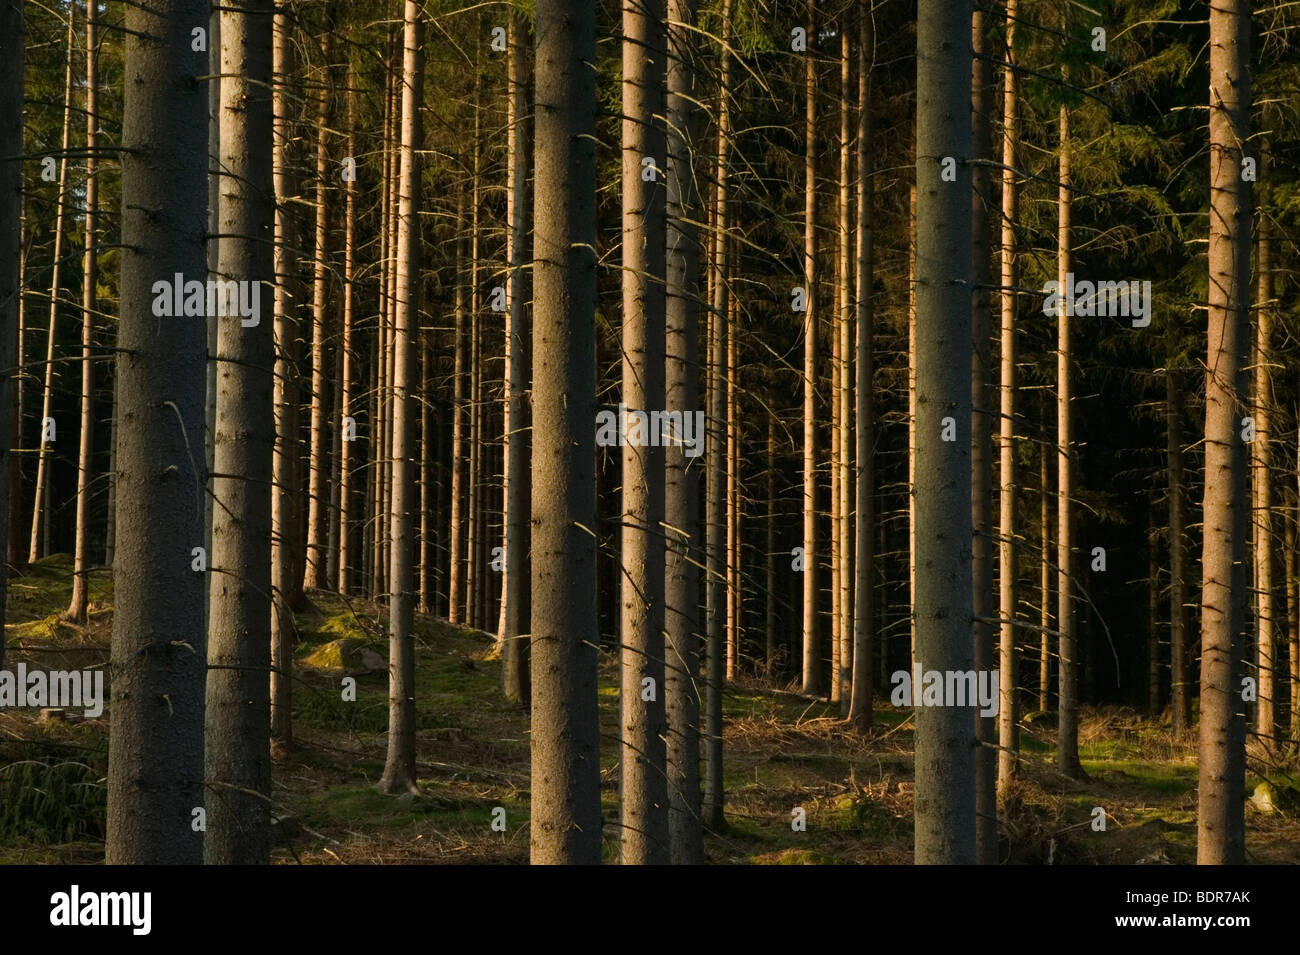 Spruceforest Sweden. Stock Photo